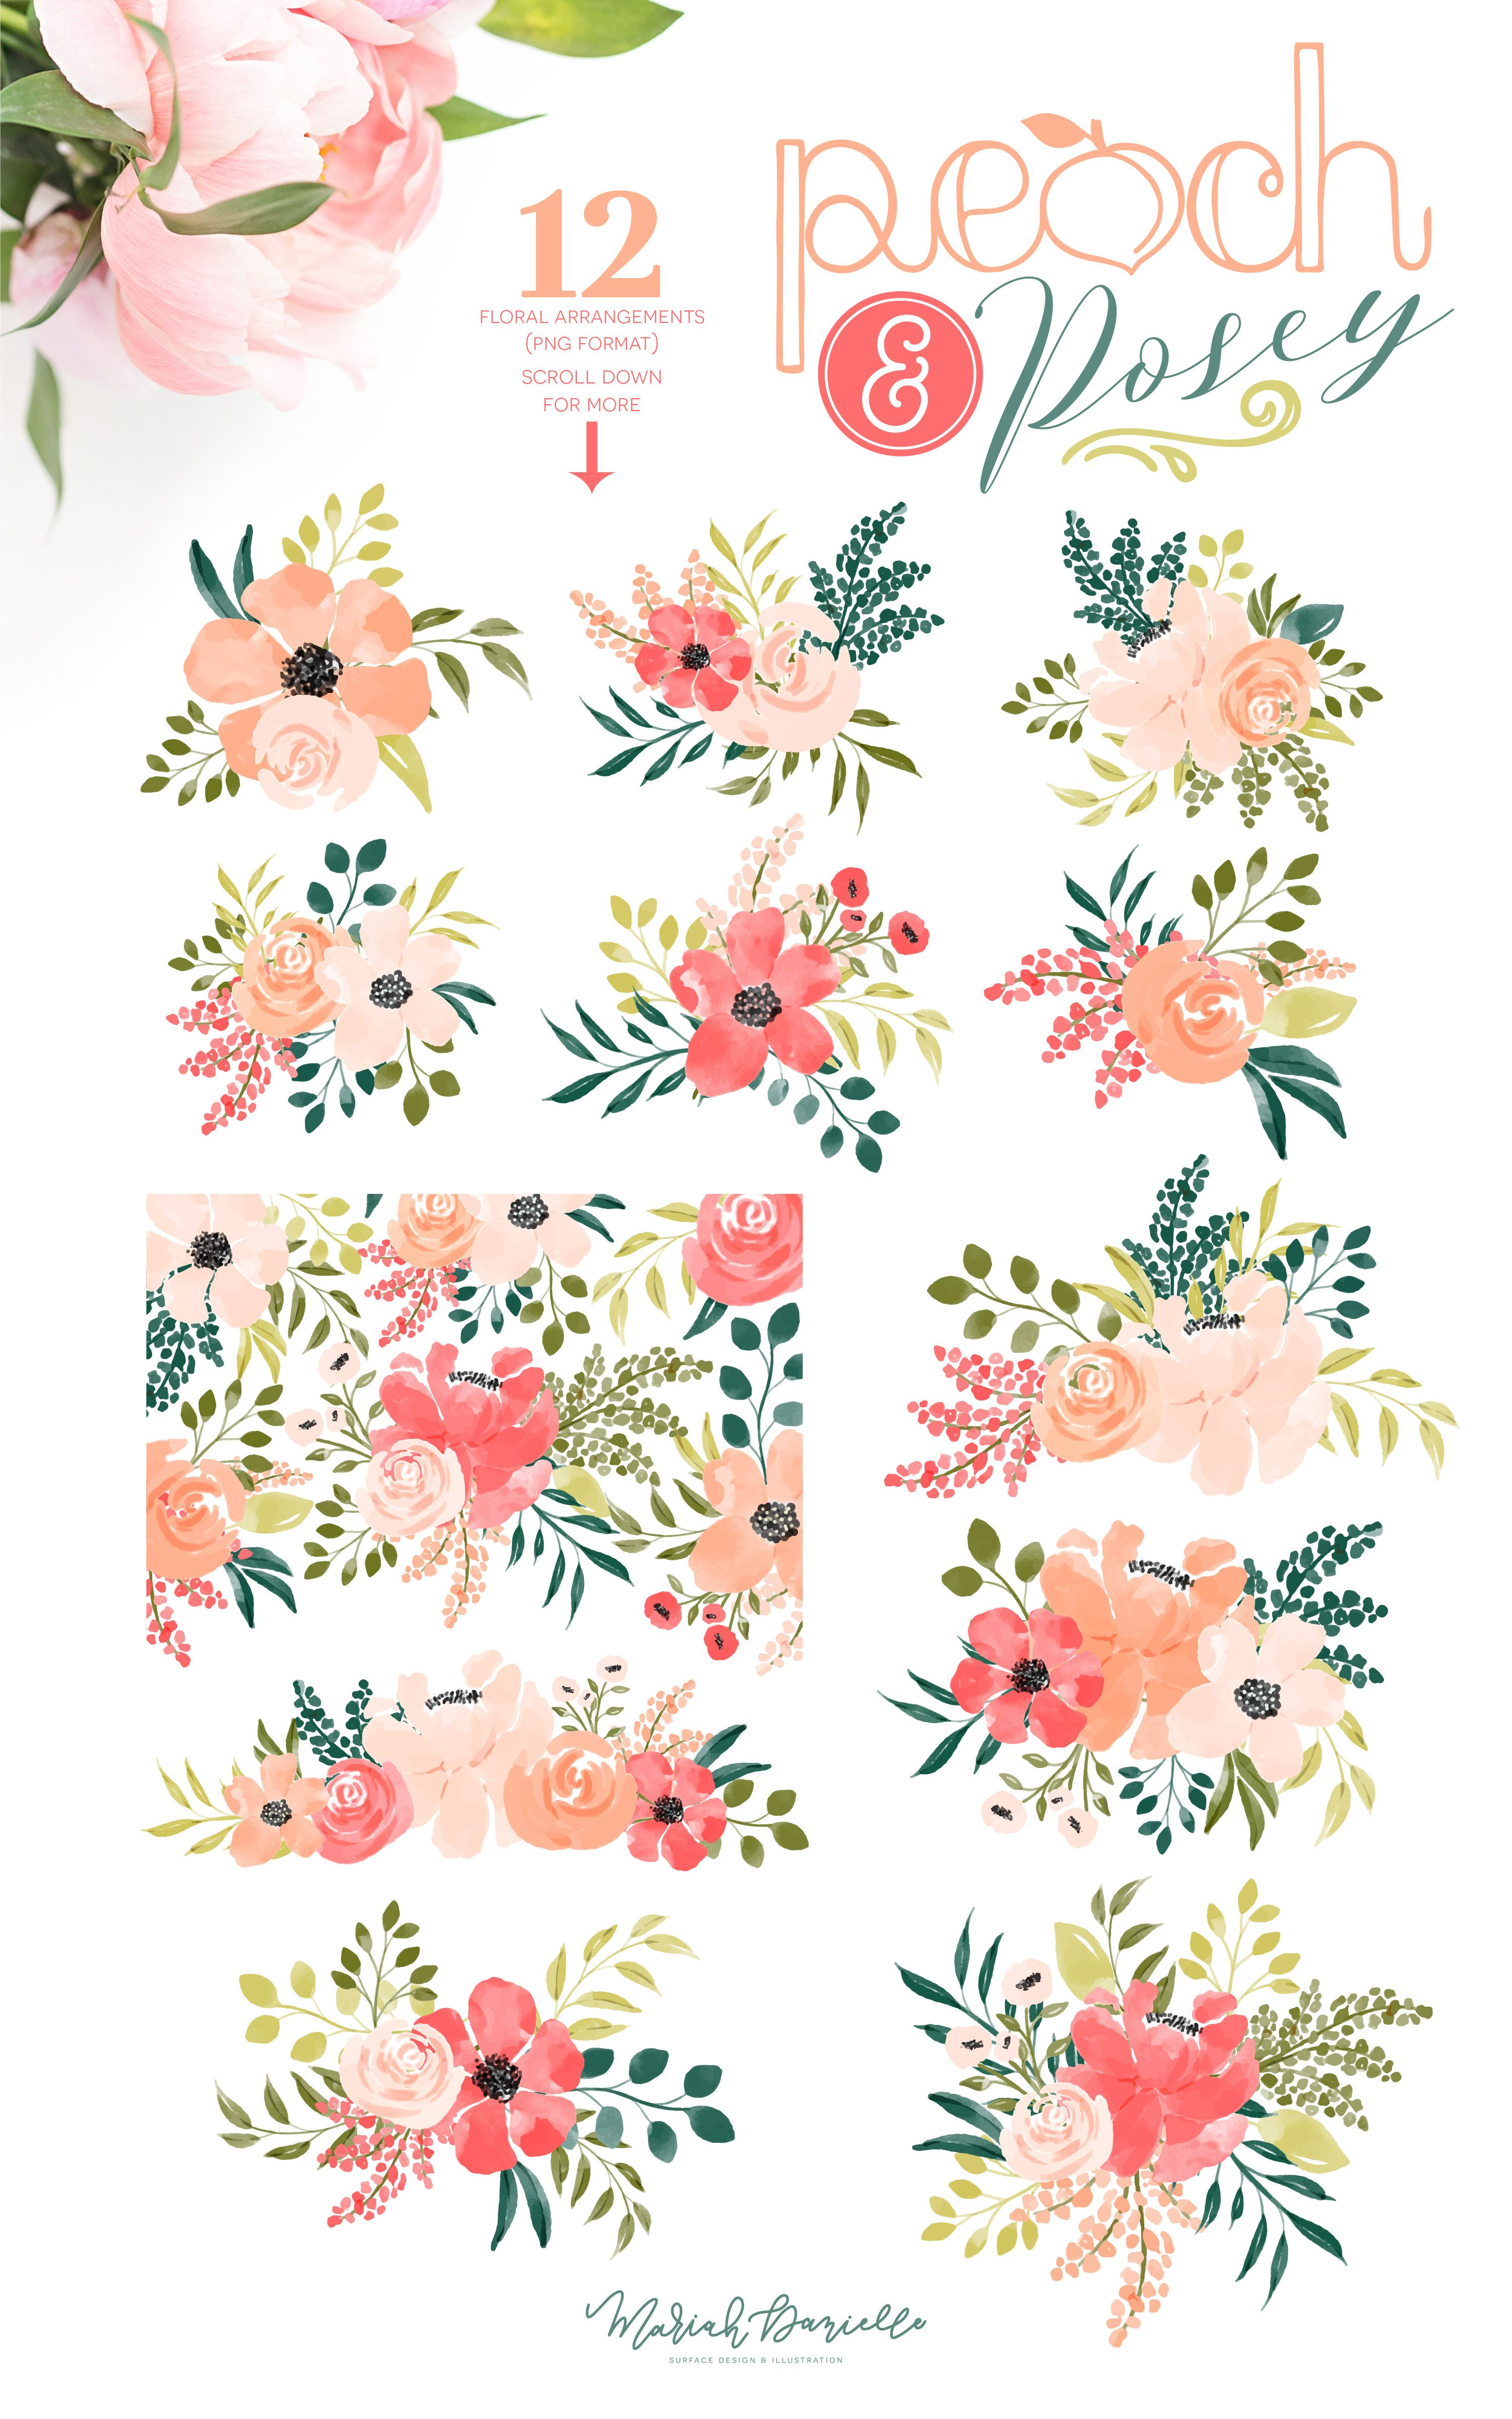 Peach Posey Floral Graphic Set Illustrations Hand Drawn